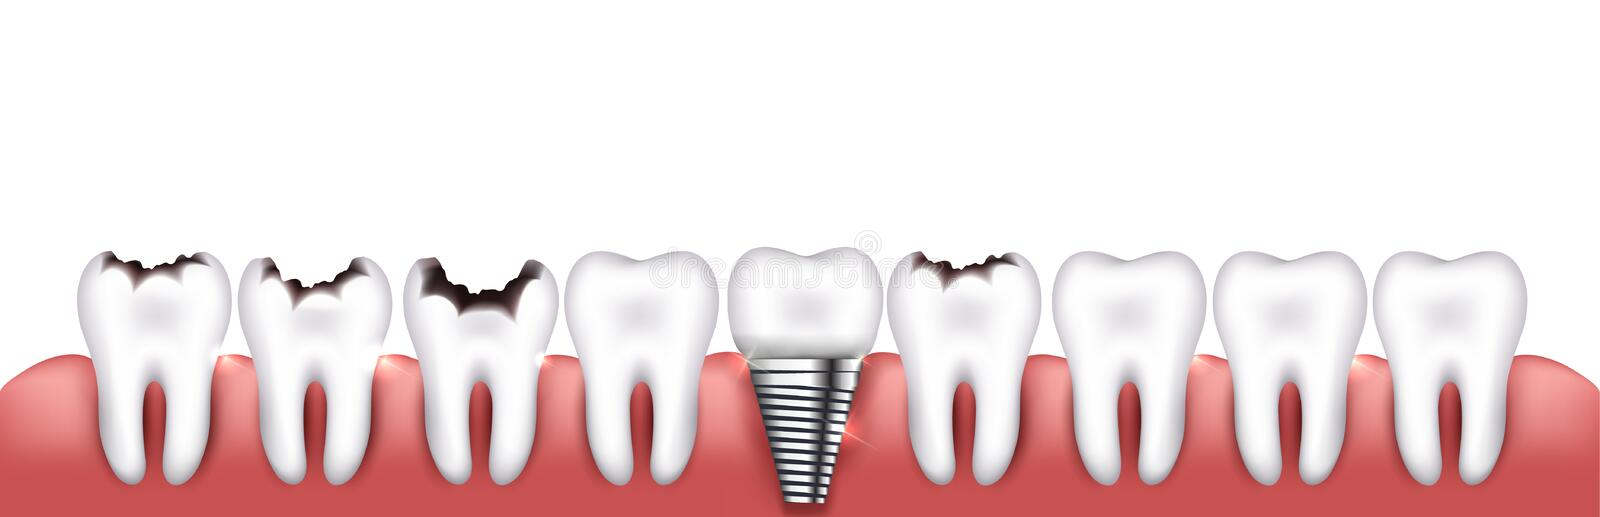 Various teeth conditions royalty free illustration